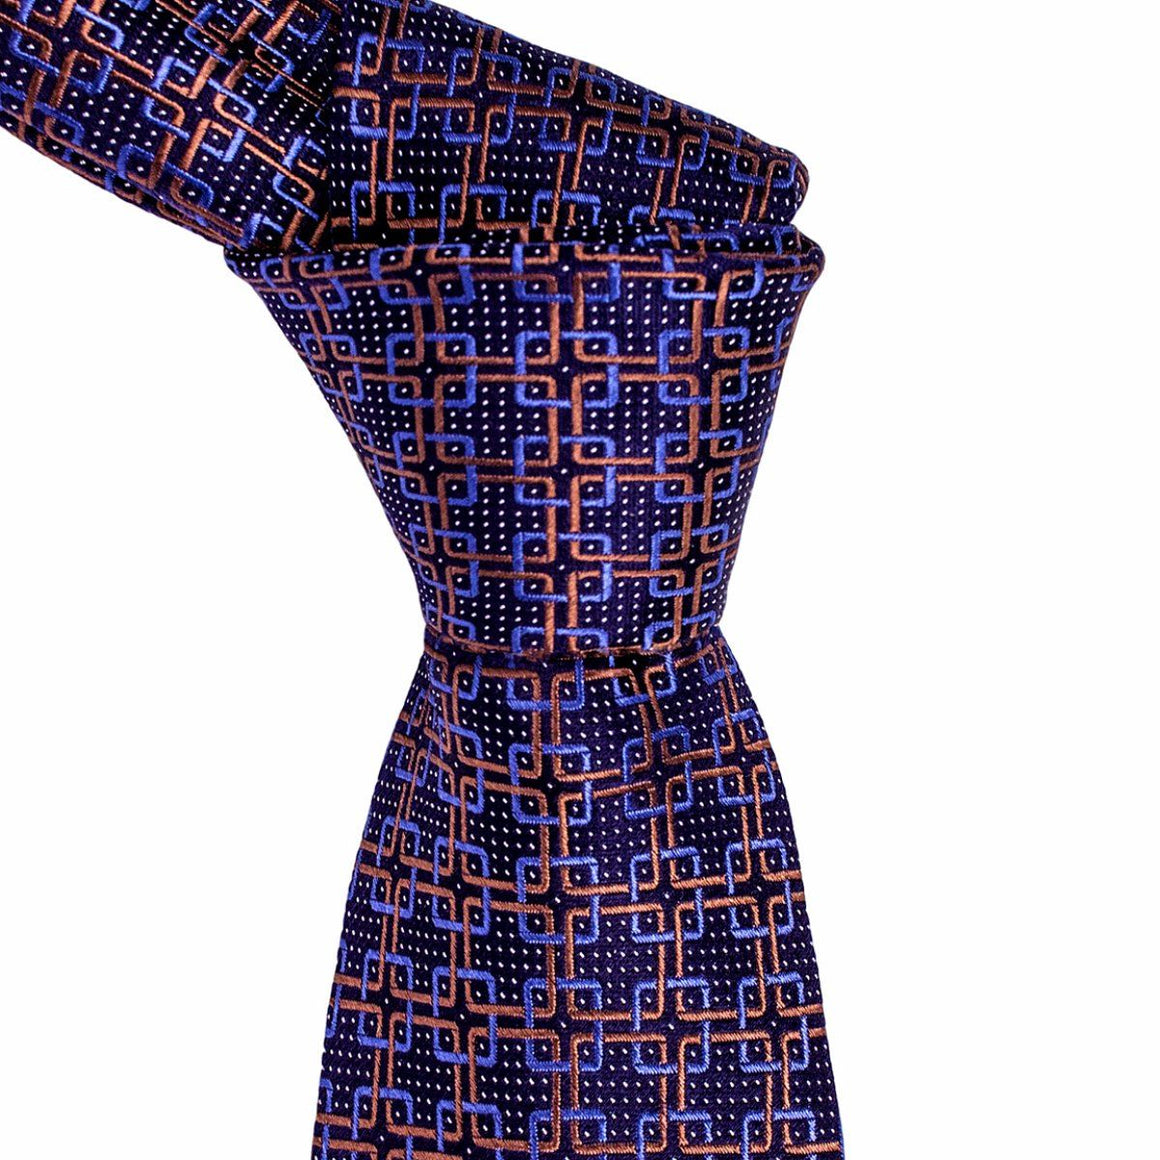 Harrison - TieThis Neckwear and Accessories and TieThis.com